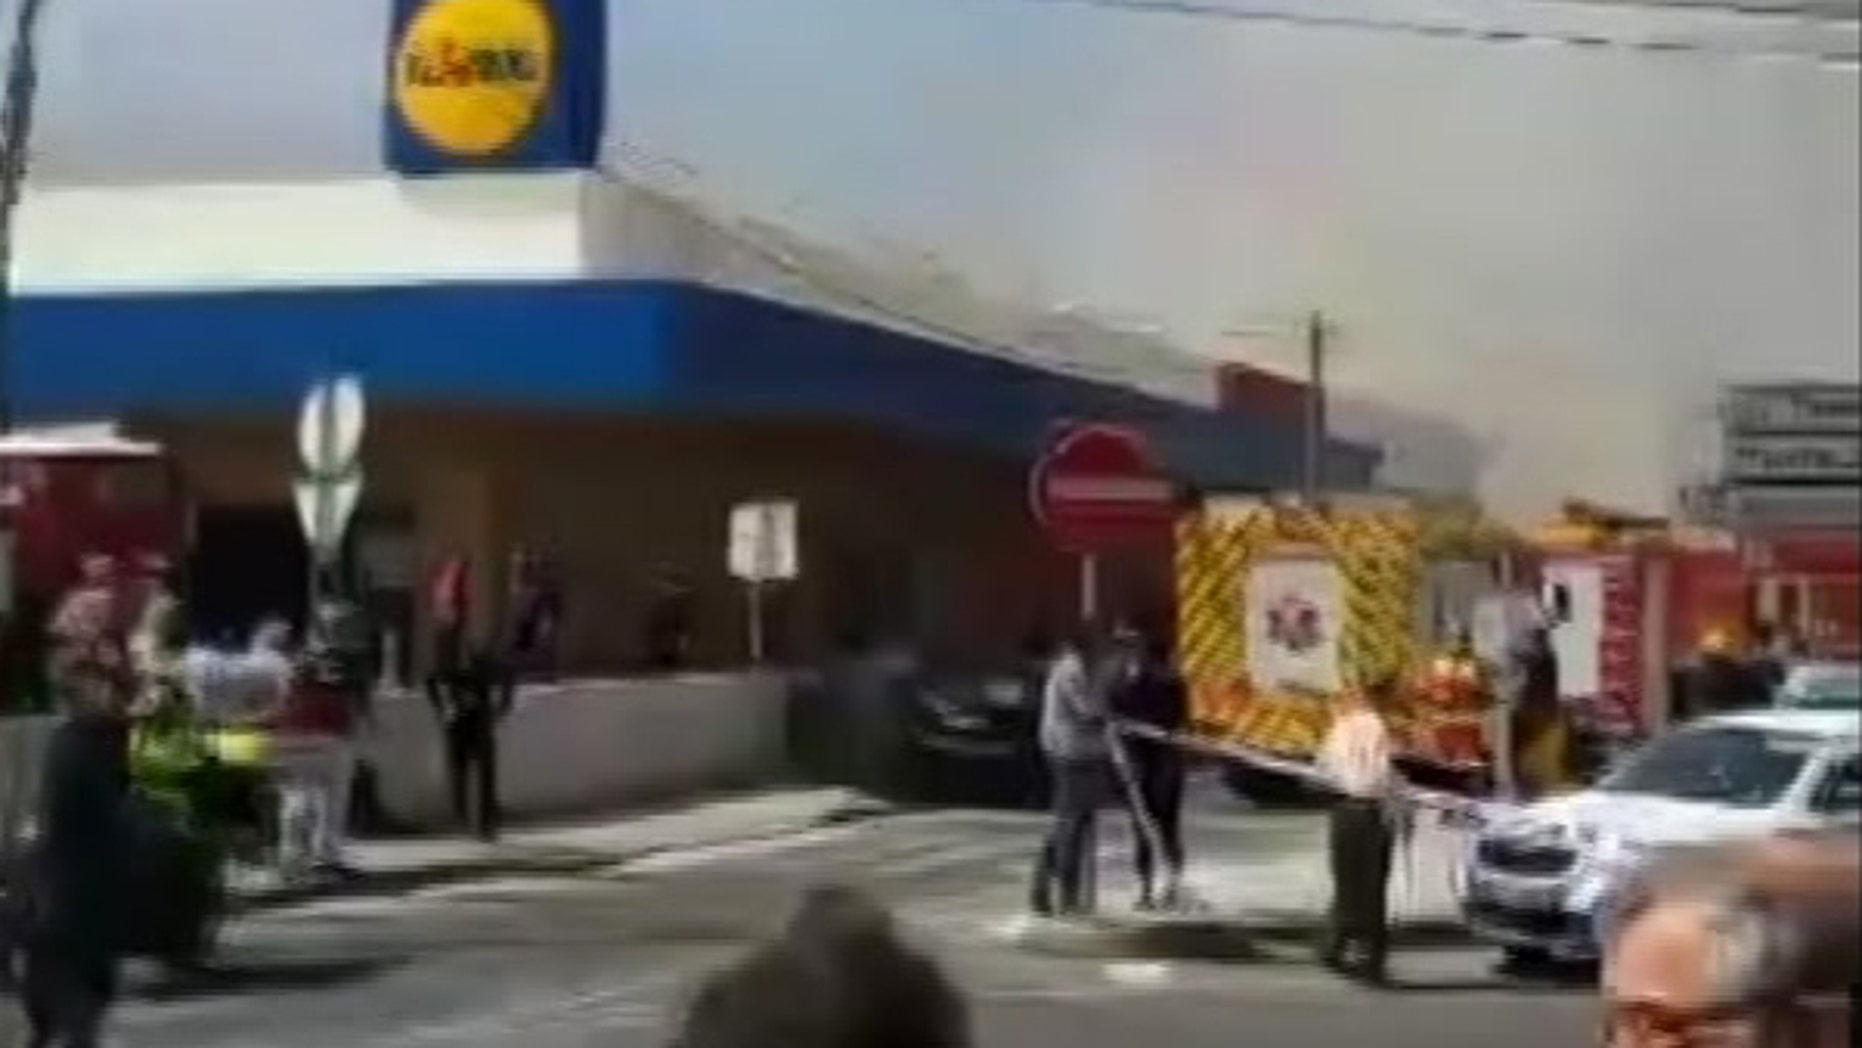 Smoke rises behind a supermarket near Lisbon after a small plane crashed. Portuguese officials say a small plane has crashed beside a supermarket near Lisbon, killing four people on board the aircraft and one on the ground. Four people were slightly injured. (Ramiro Ribeiro via AP)